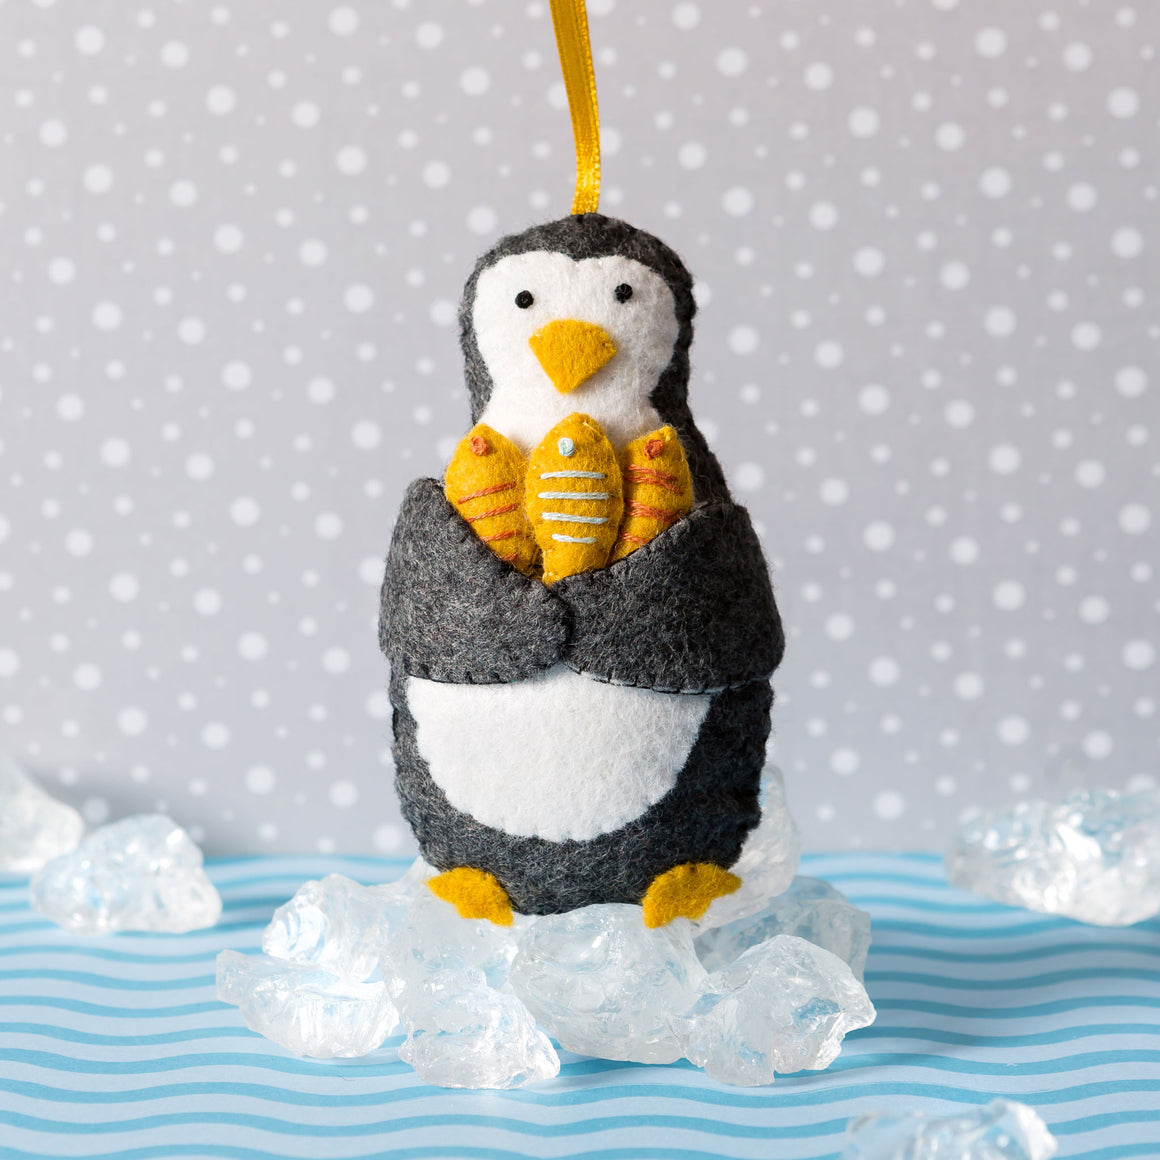 /'Baby Penguin/' Ready-to-Sew Mini Soft Toy Kit by Minicraft